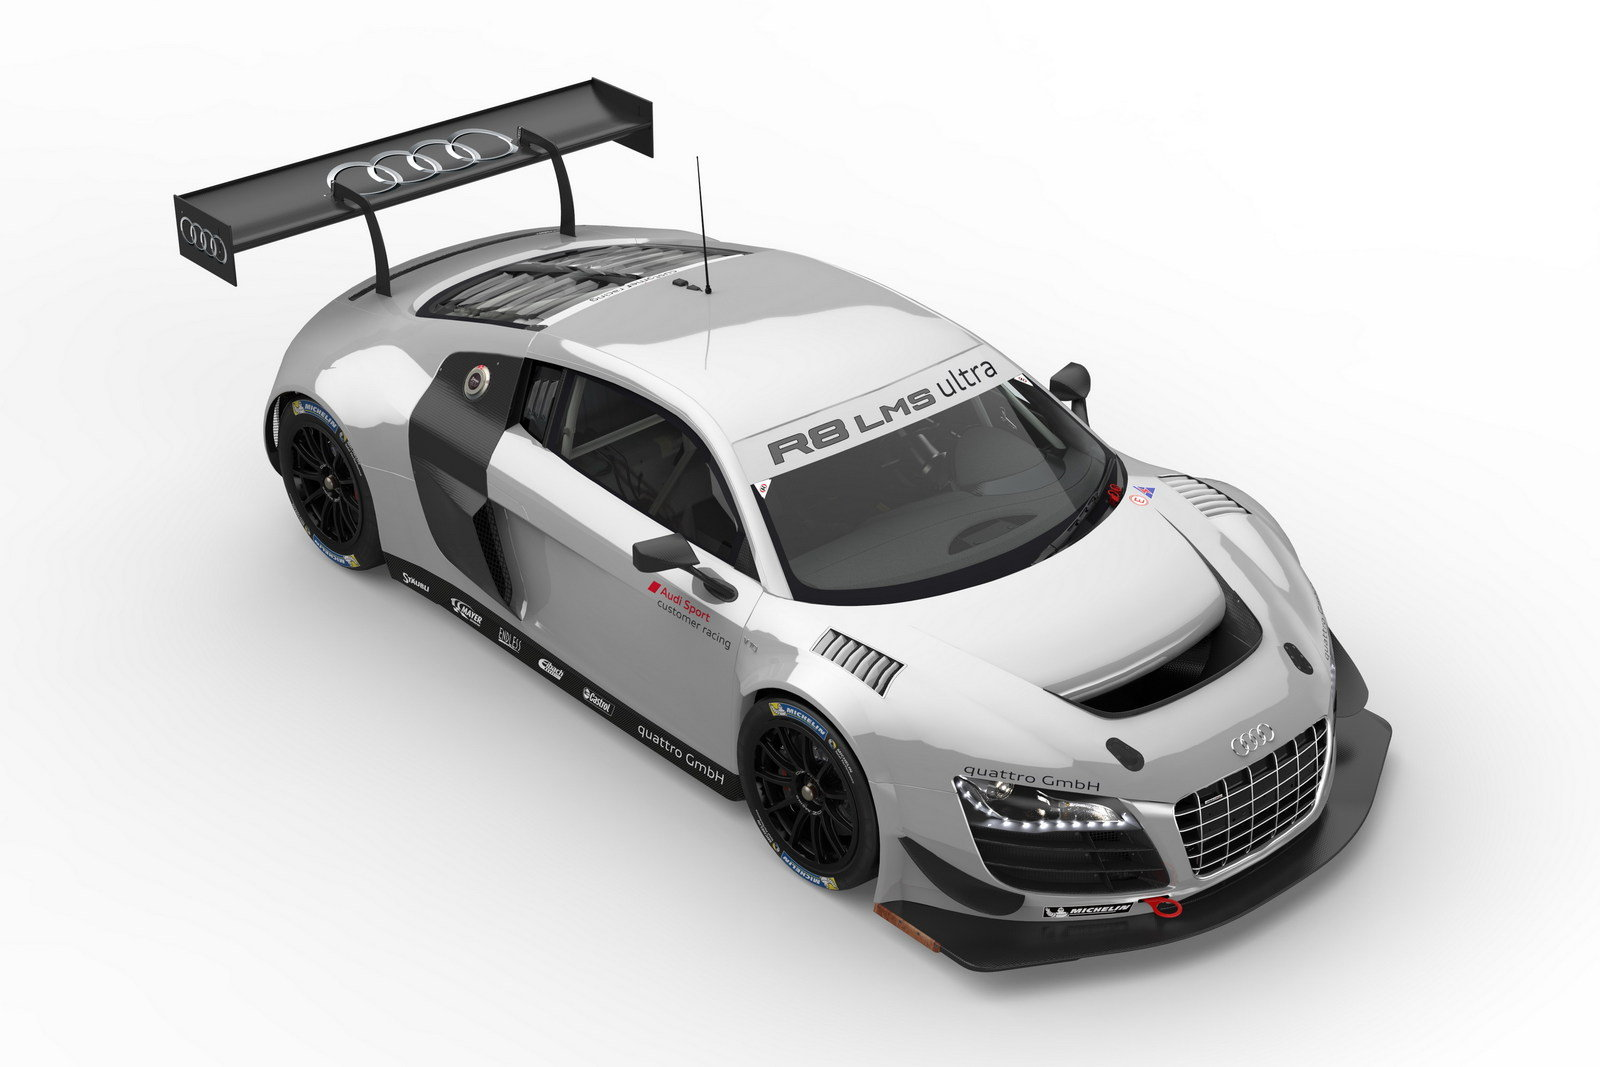 2014 audi r8 lms ultra picture 547740 car review top speed. Black Bedroom Furniture Sets. Home Design Ideas